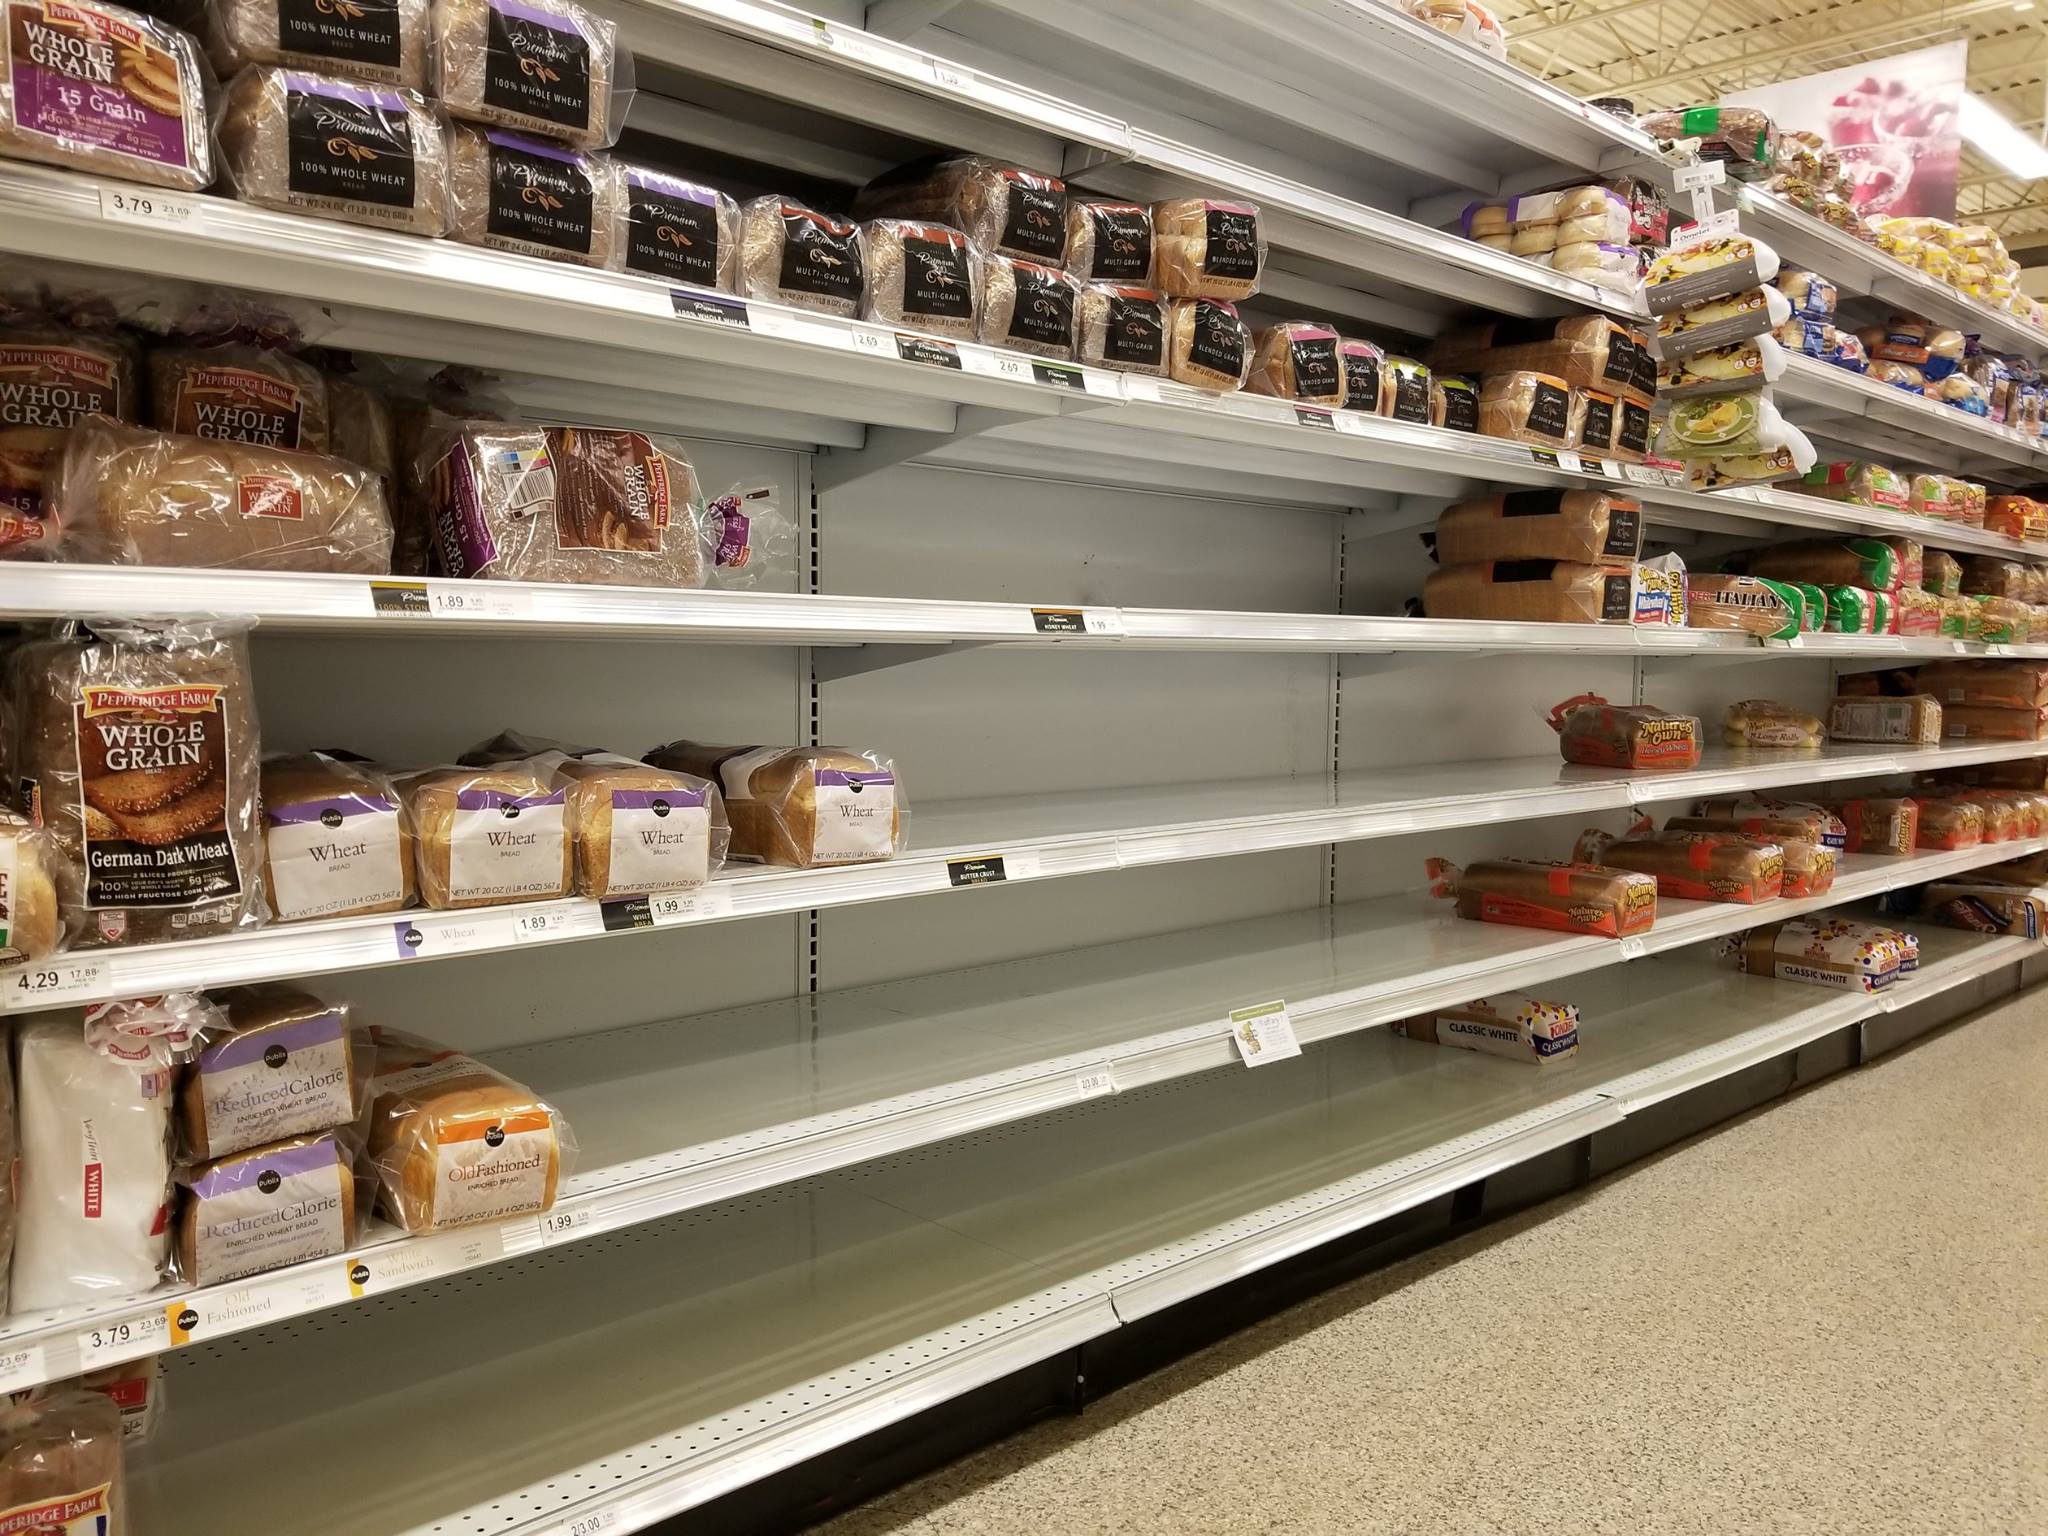 Like George And I Chris Had Seen Several Posts On Social Media About Empty Shelves Wondered If They Were Truly Representative Of The Situation